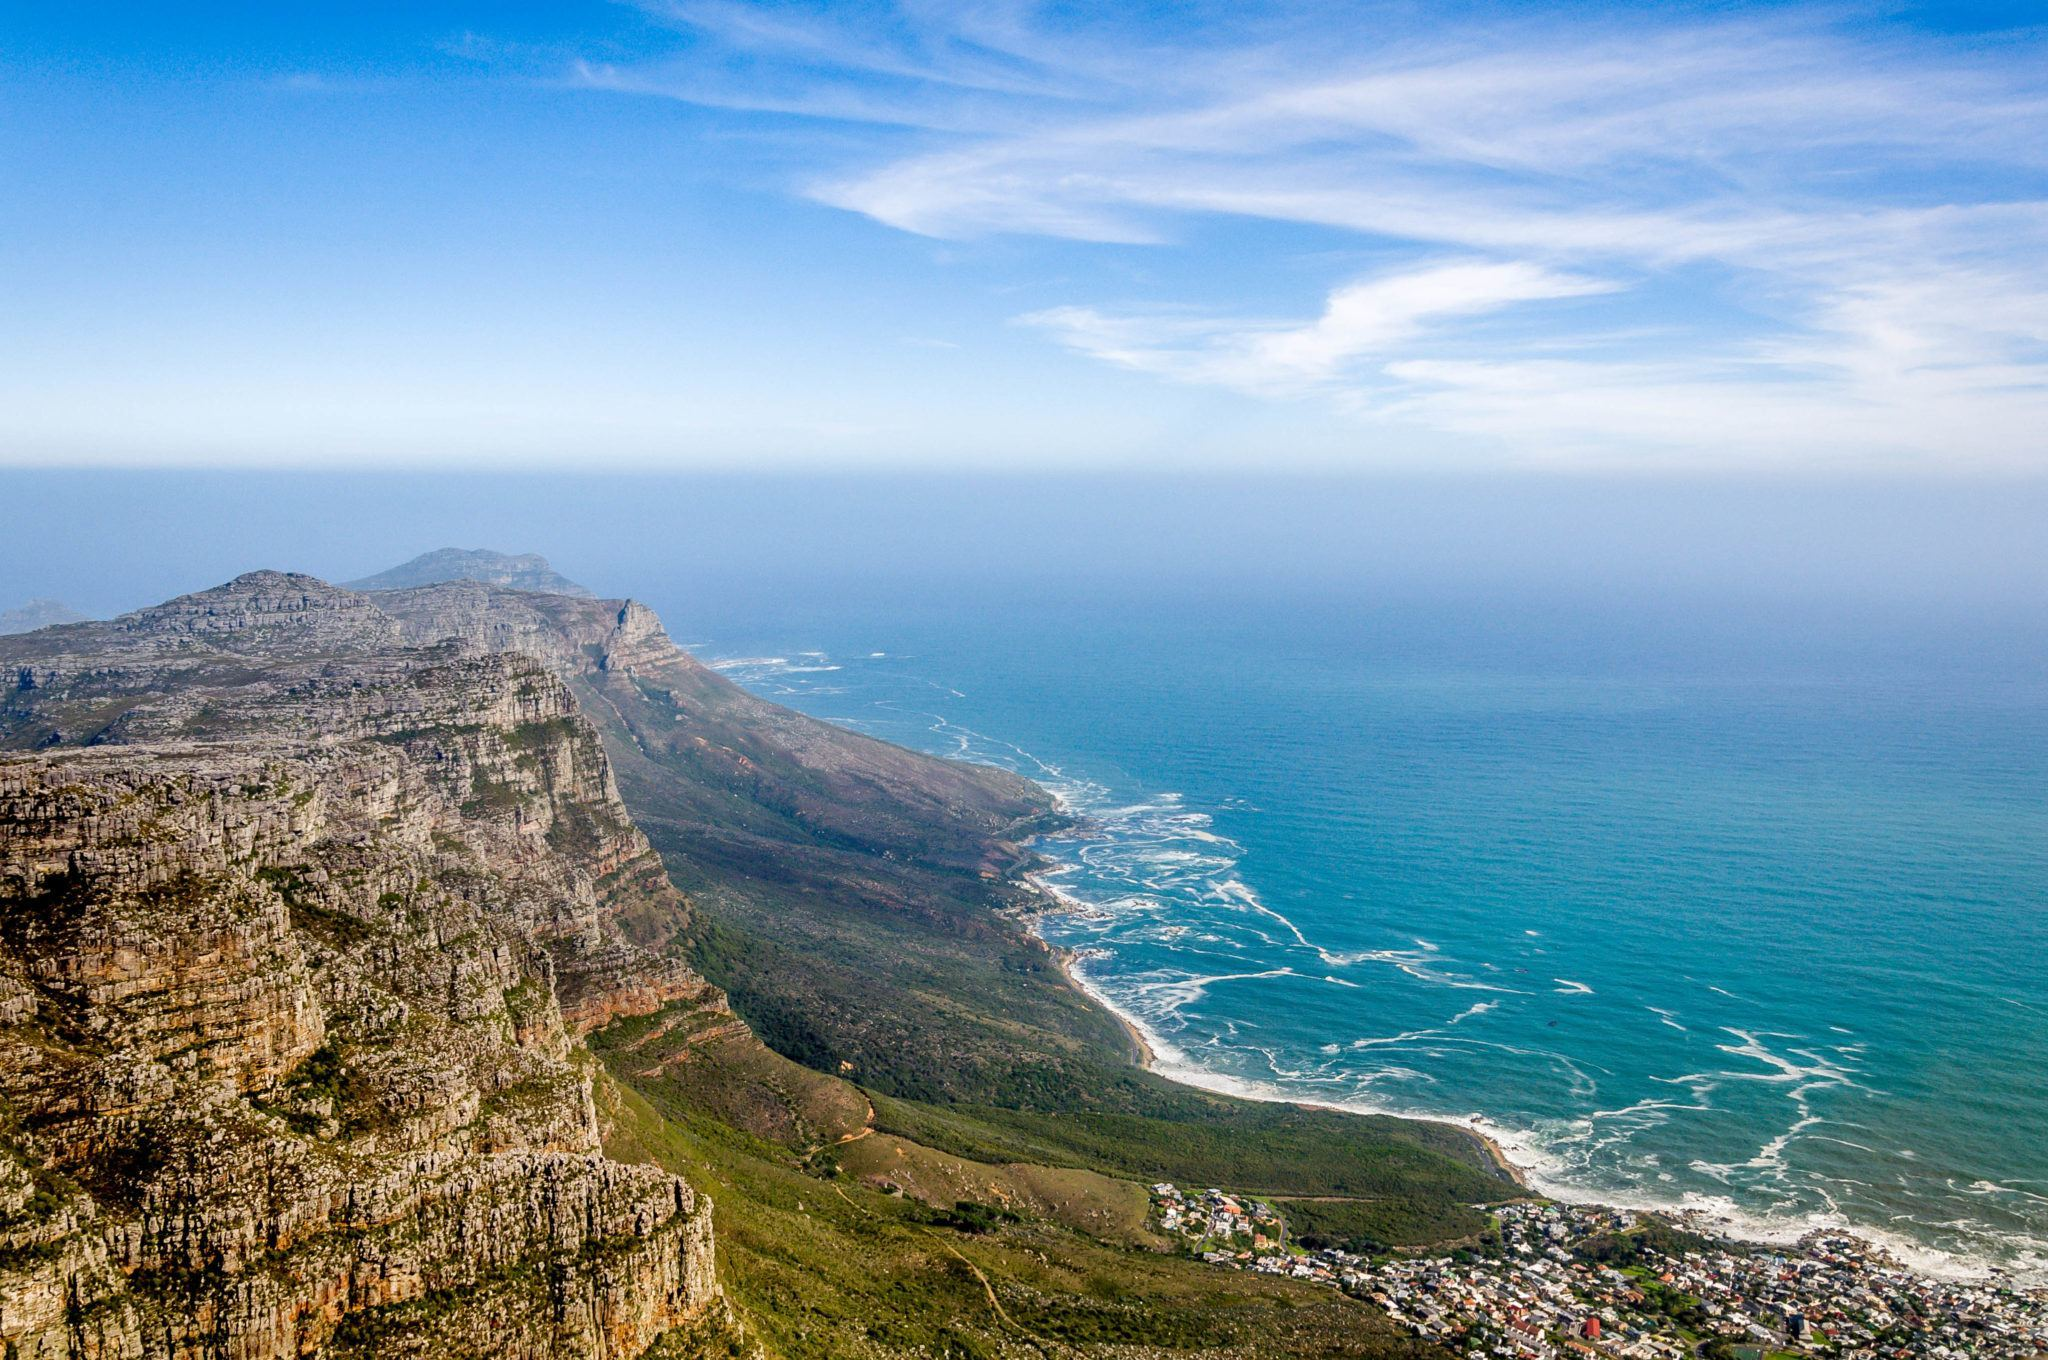 Table Mountain overlooking the ocean